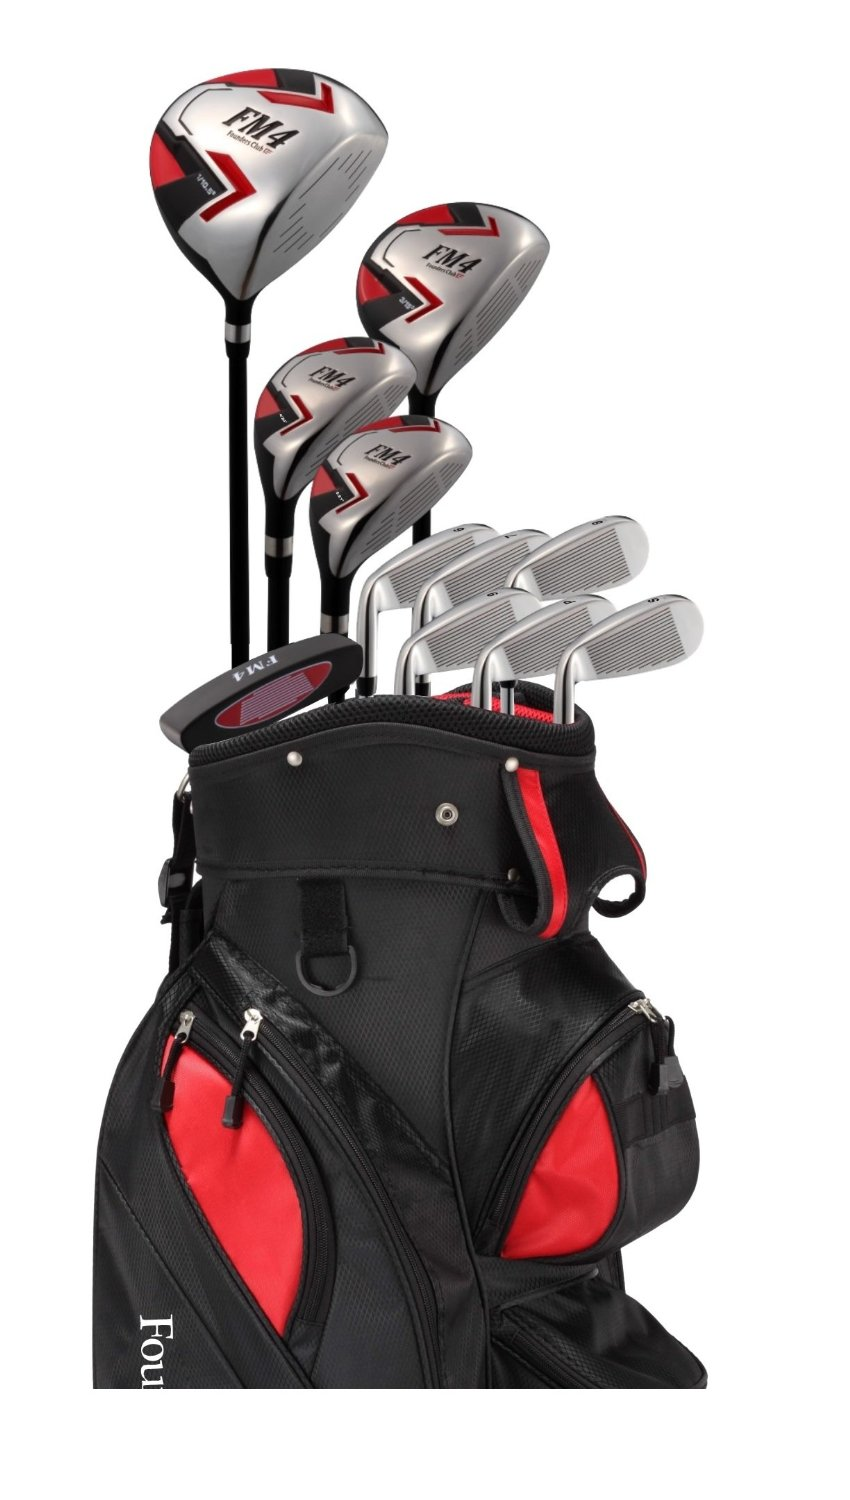 Mens Founders Club FM4 Complete Golf Club Set with Stand Bag